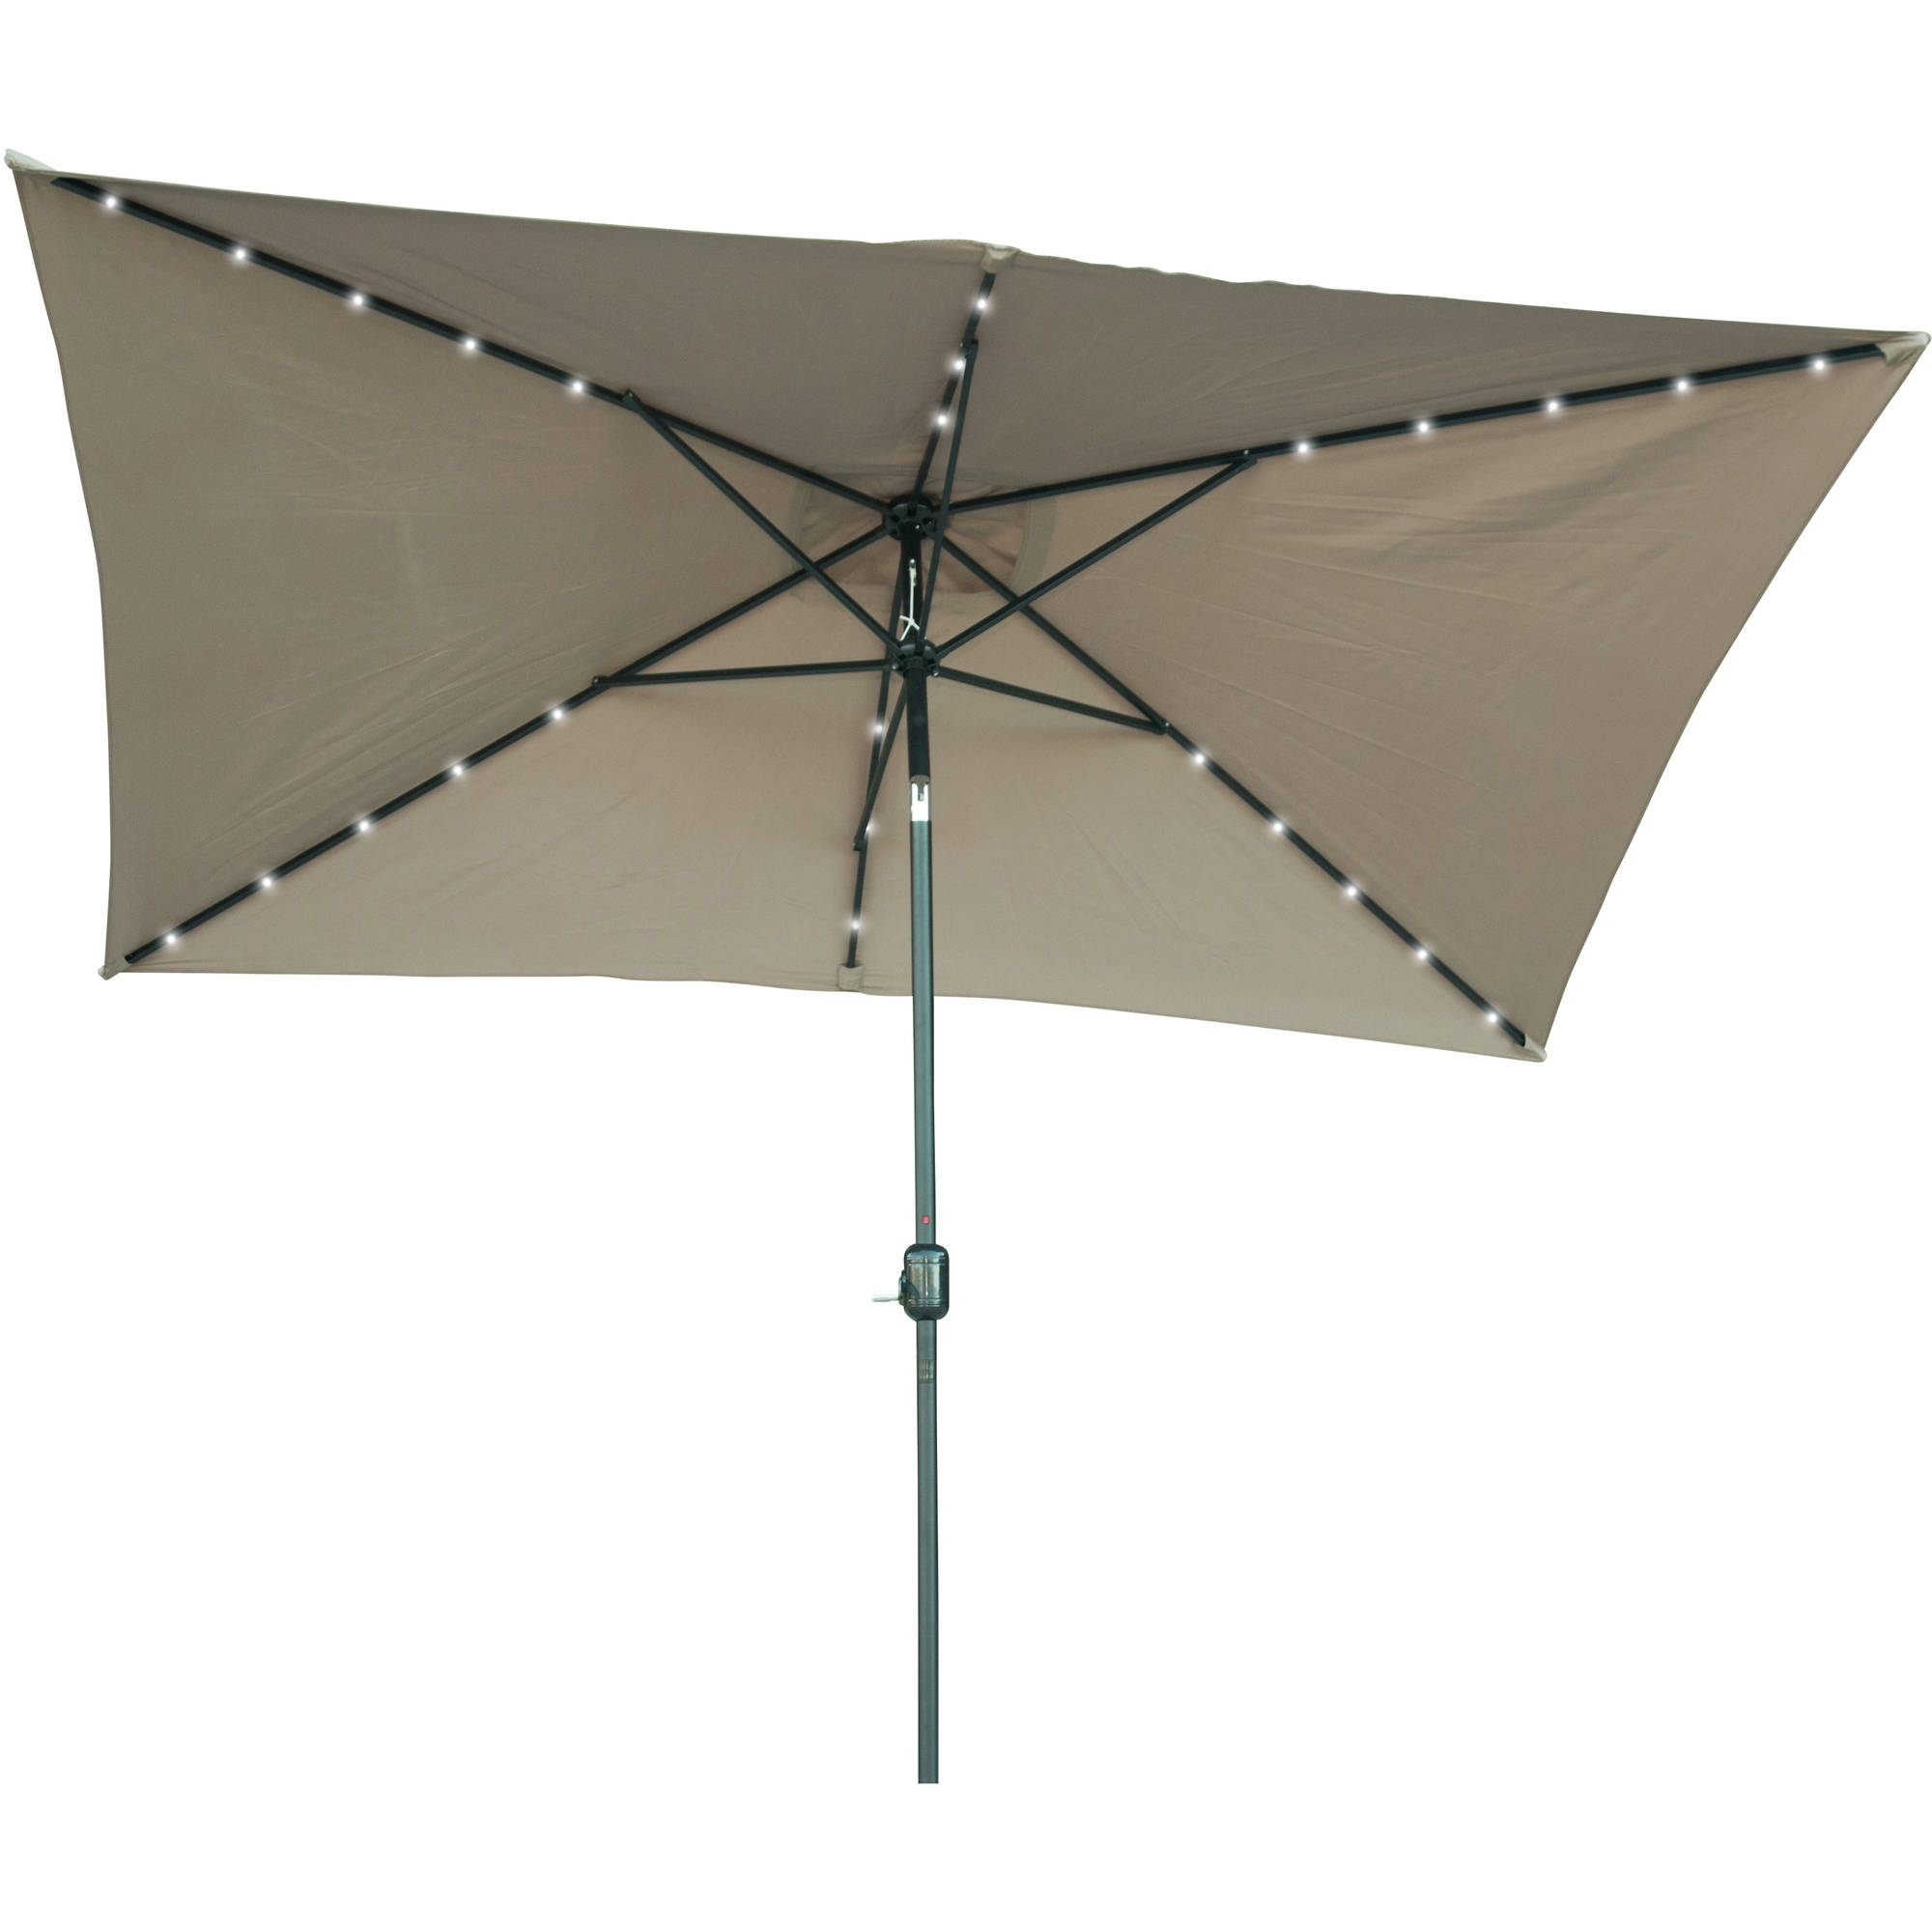 Lighted Umbrellas For Patio With Widely Used Rectangular Solar Powered Led Lighted Patio Umbrella – 10' X (View 9 of 20)